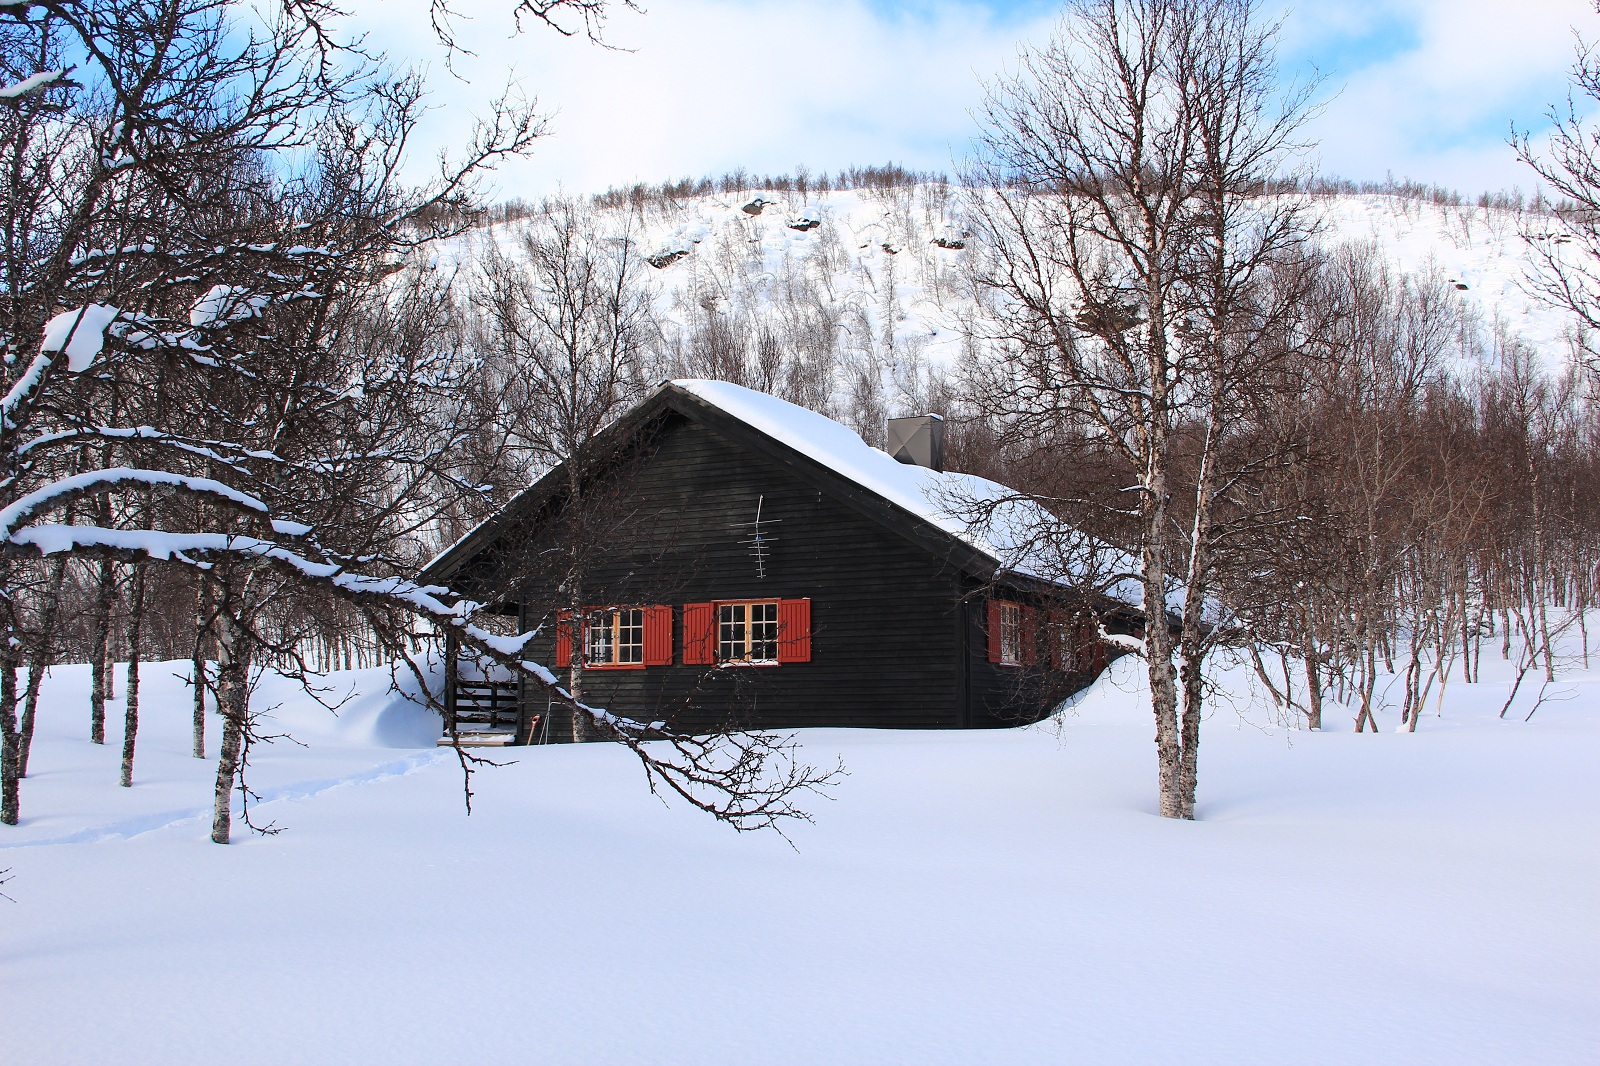 Artic Winter - Polar Cabin